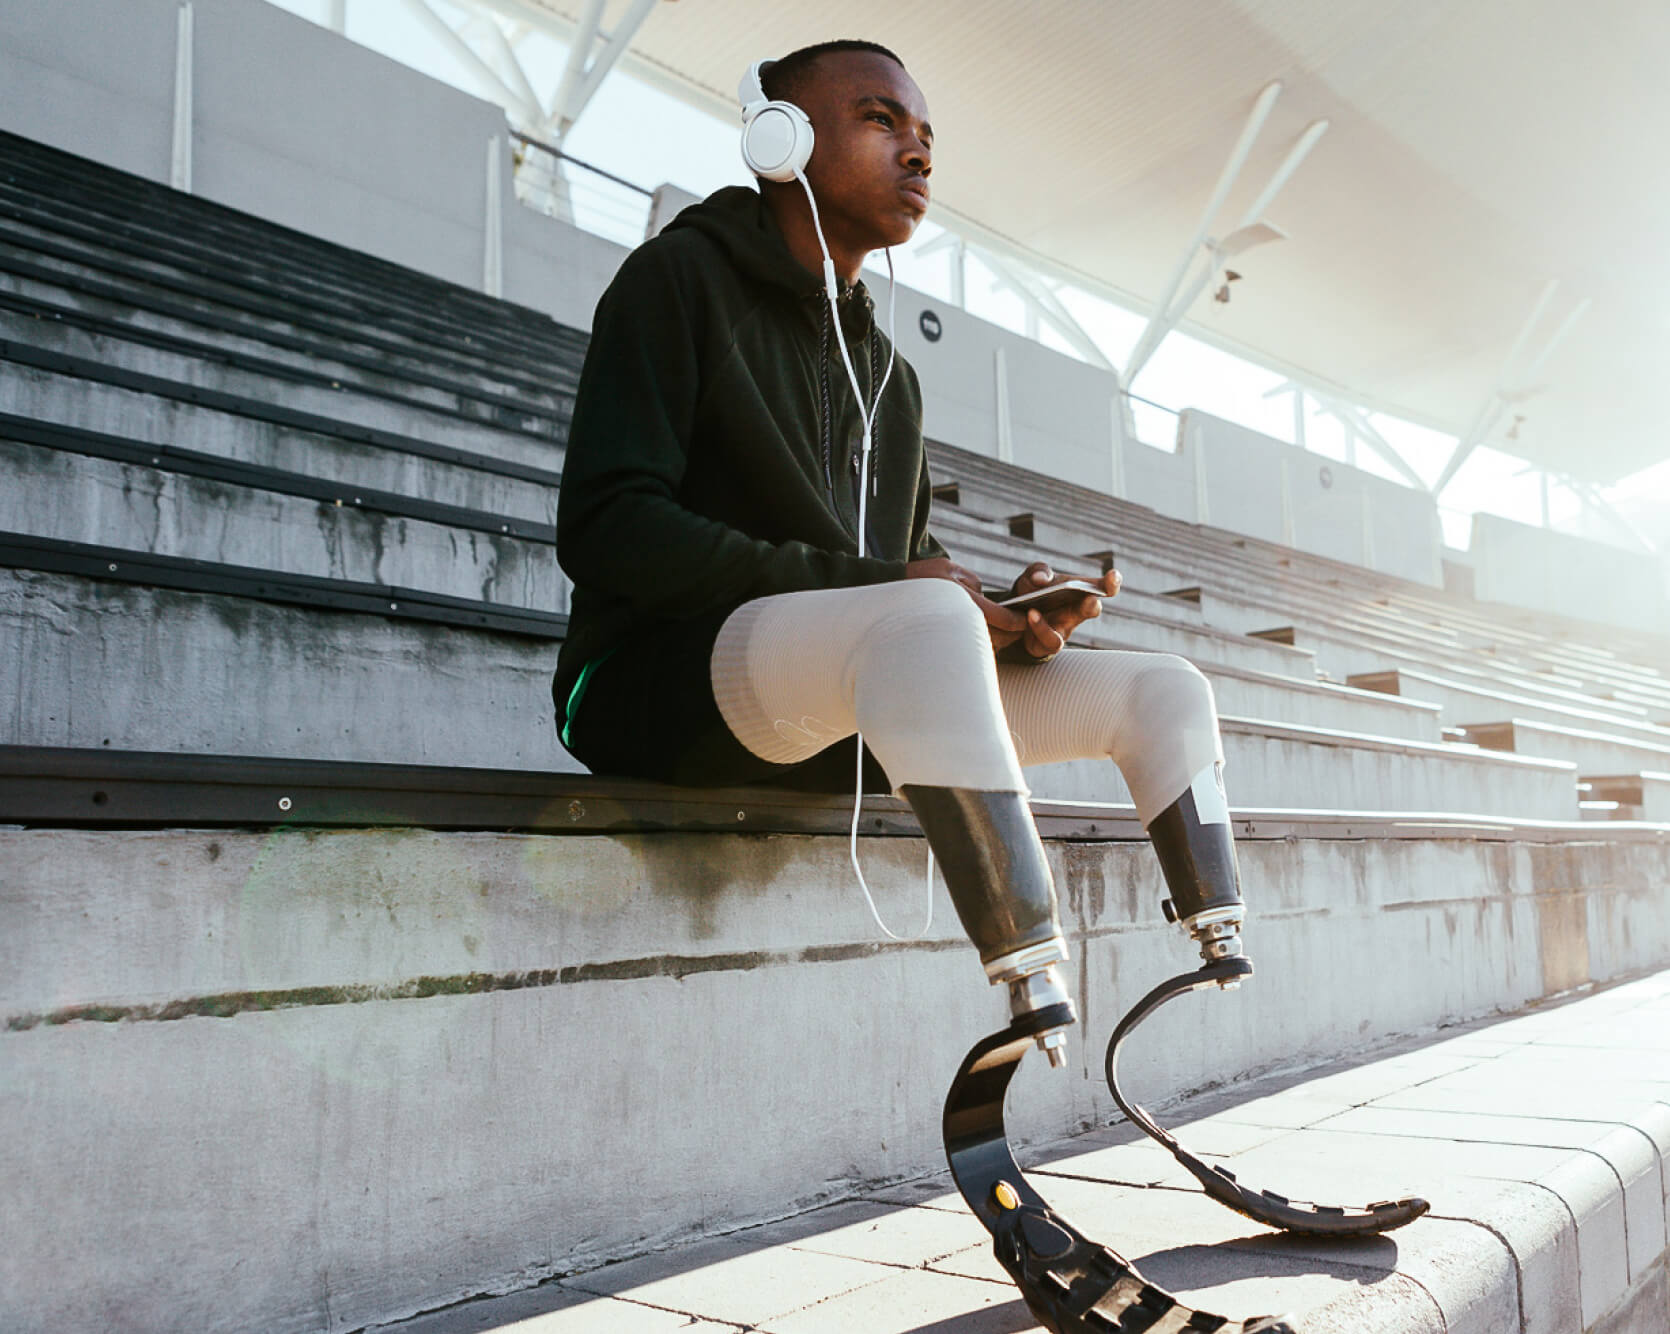 Young black athlete with prosthetic legs